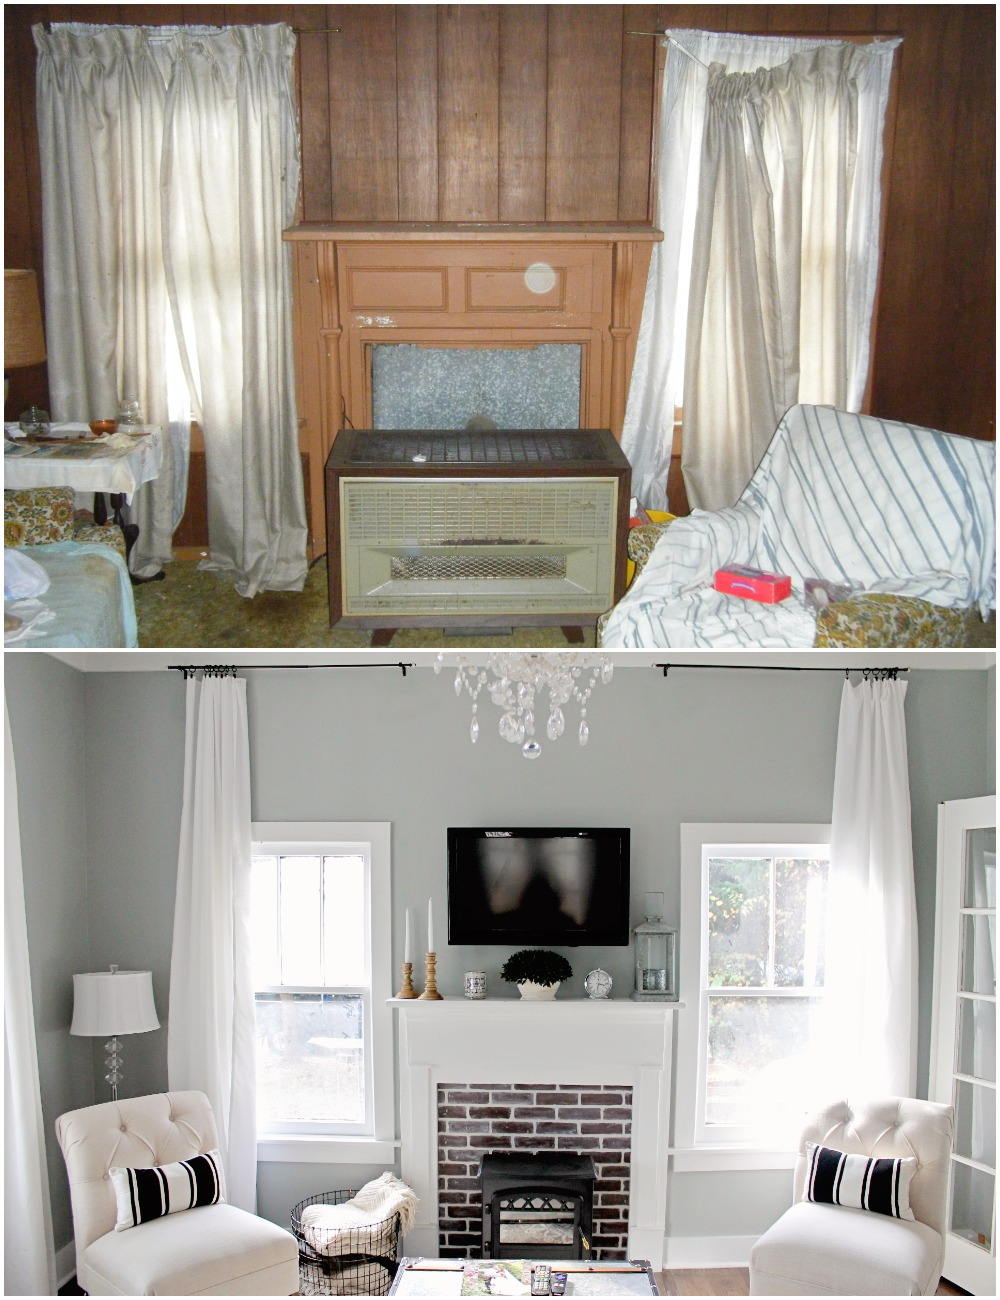 Elizabeth Burns Design  Budget-Friendly Fixer Upper Farmhouse Before and After House Flip - DIY Living Room with Faux Fireplace and French Doors - Sherwin Williams Magnetic Gray (5).jpg